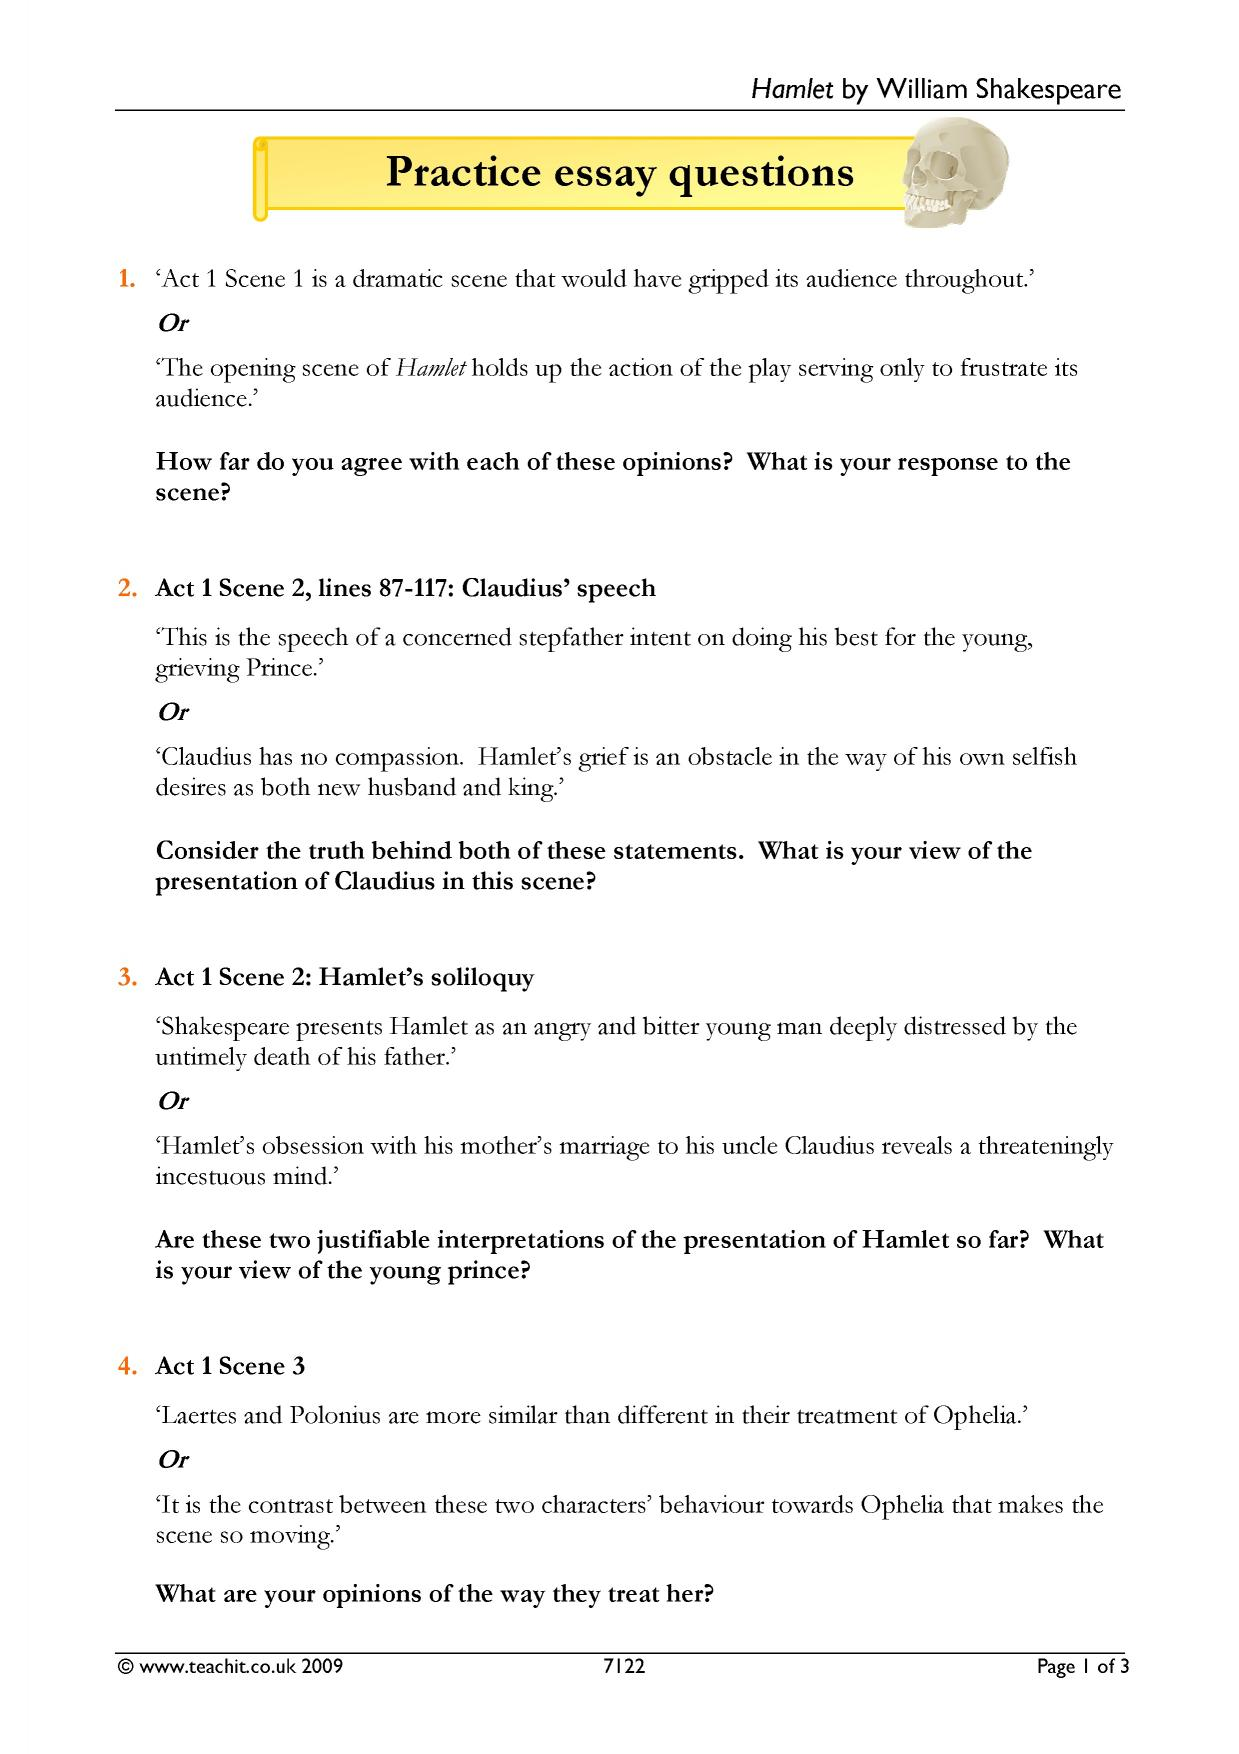 hamlet soliloquy analysis essay example Hamlet analysispdf - download as pdf file (pdf), text file (txt) or read online.